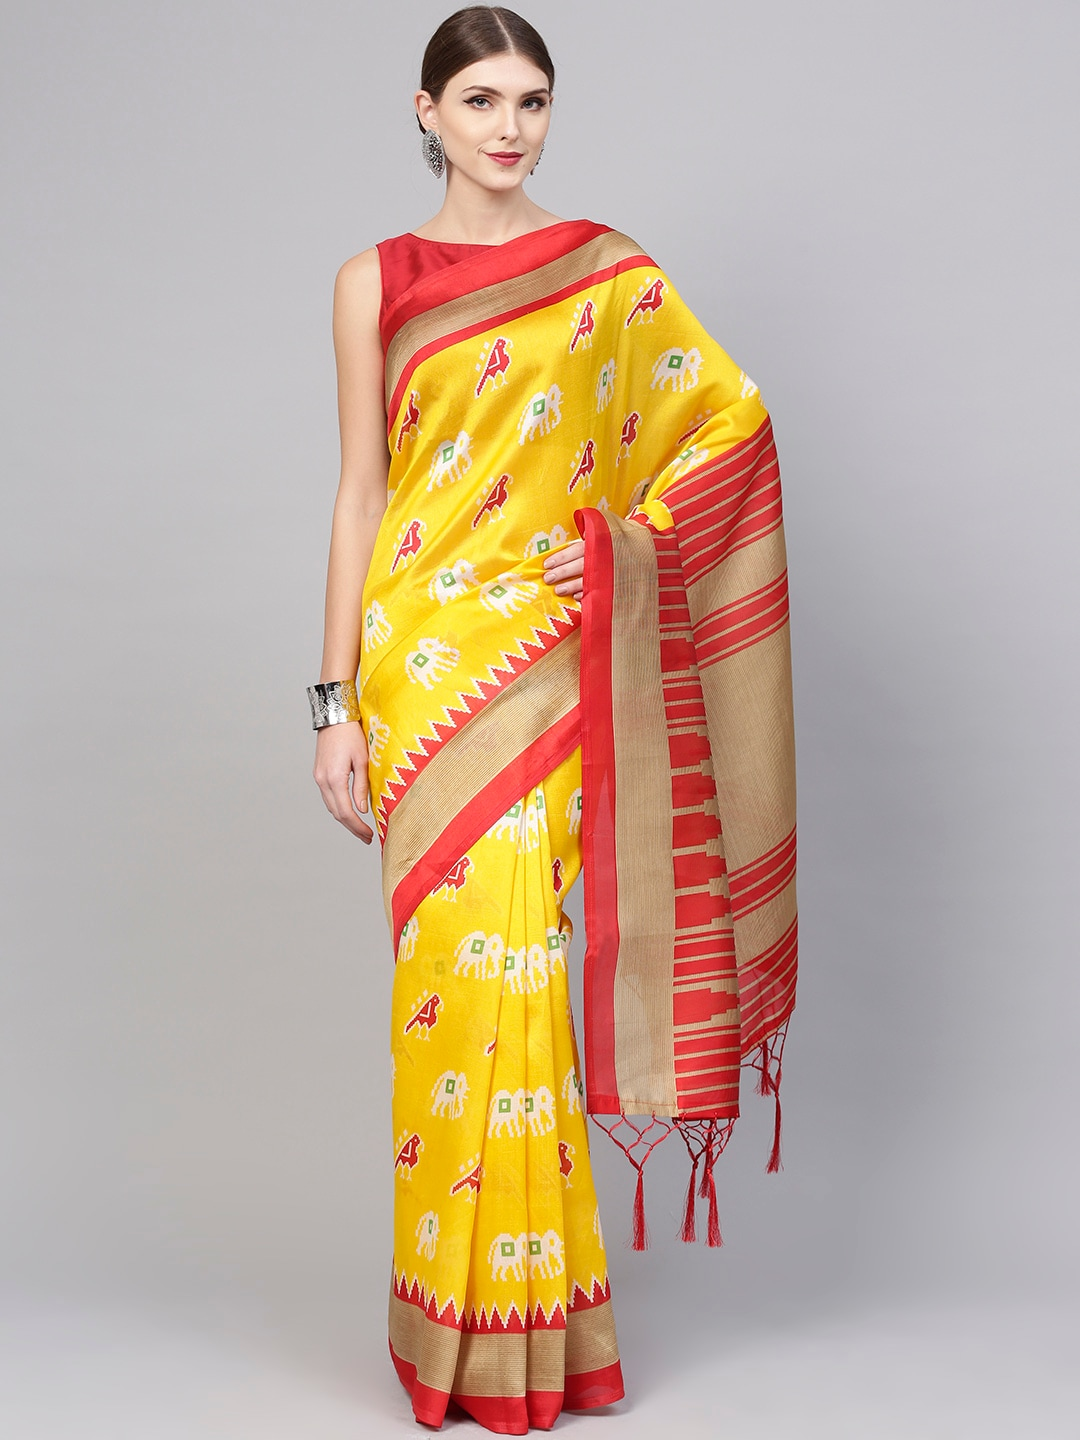 cc07d1f49295f8 Saree - Buy Sarees Online at Best Price in India